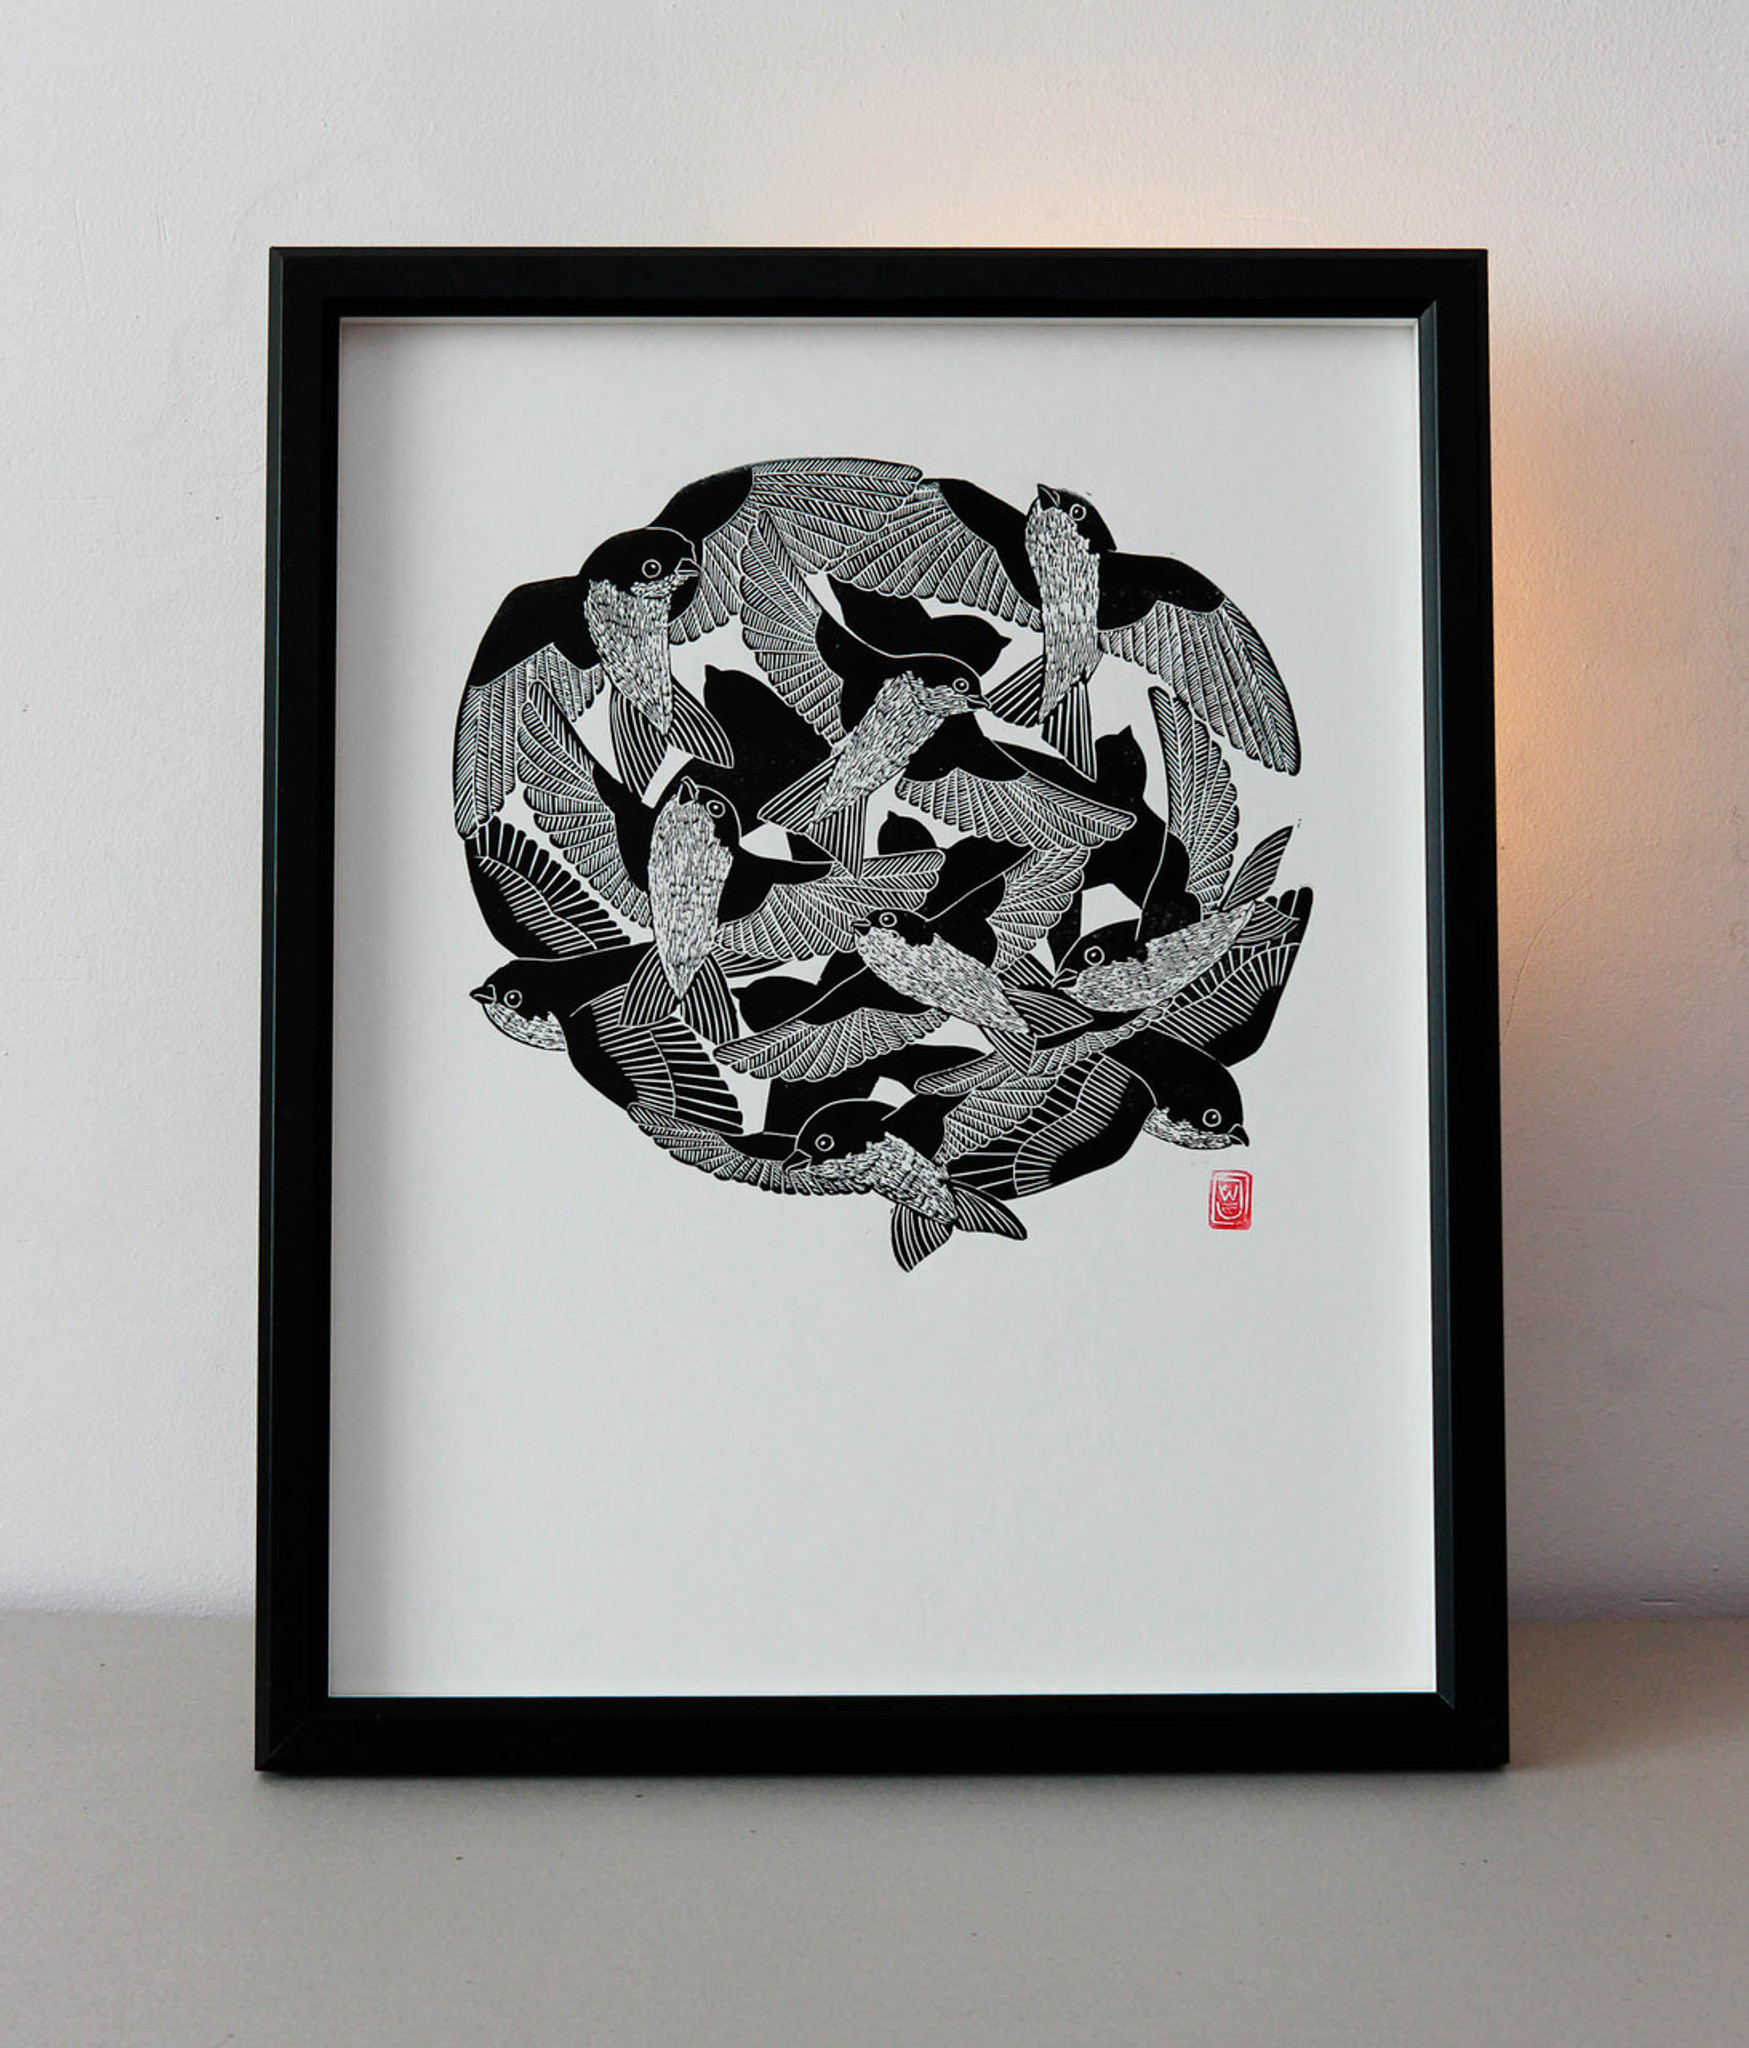 House Martin - Limited Edition Lino Print